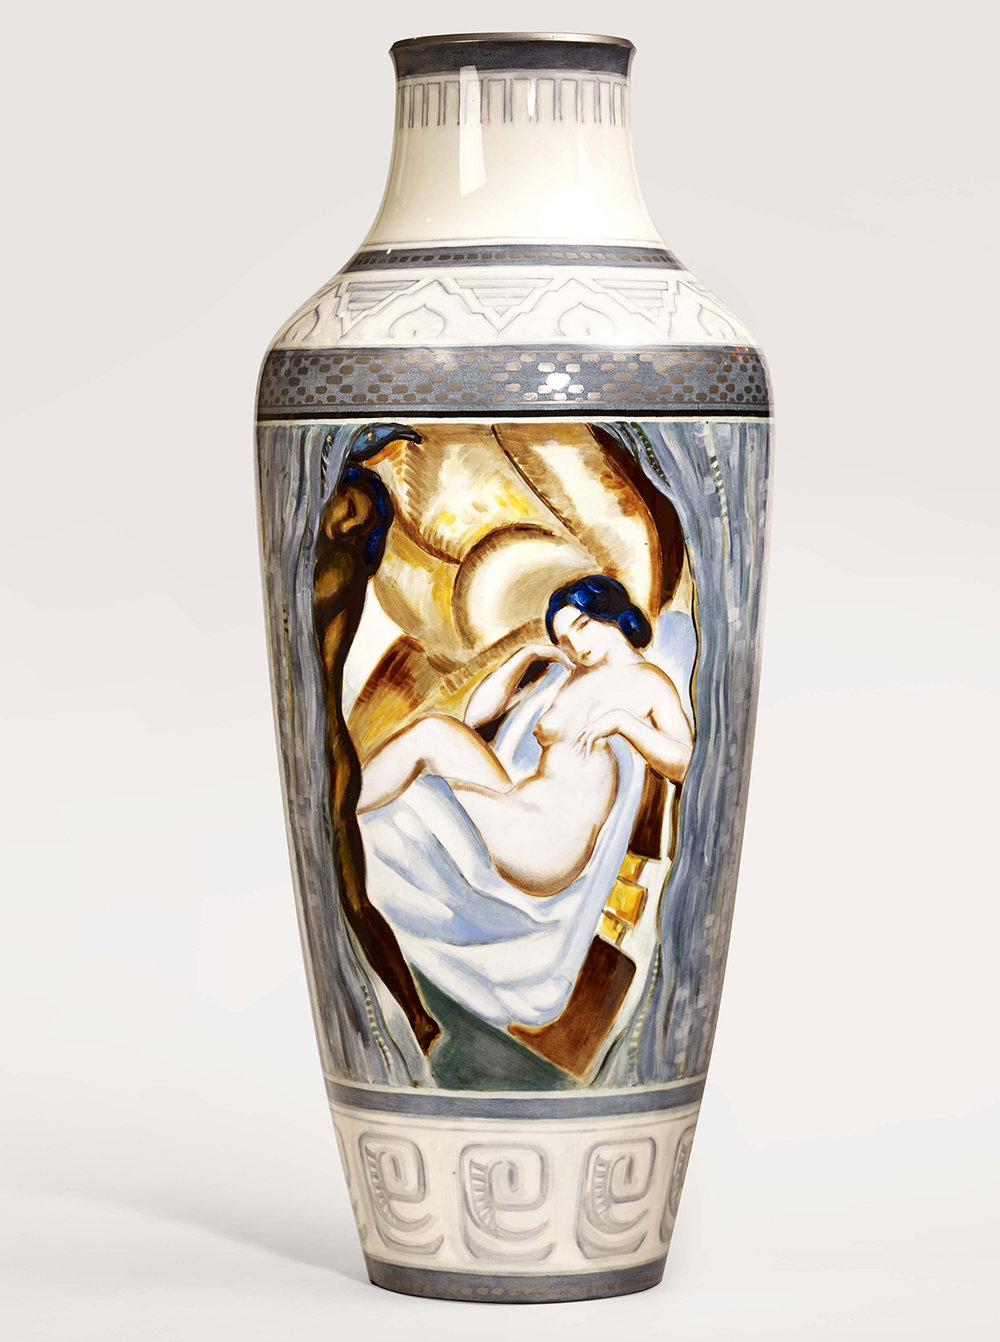 Important Art Deco vase made at Manufacture Nationale de Sevres, 1926 -36 Porcelain, 37 x 37 x 90 cm  Courtesy of Robert Zehil Gallery